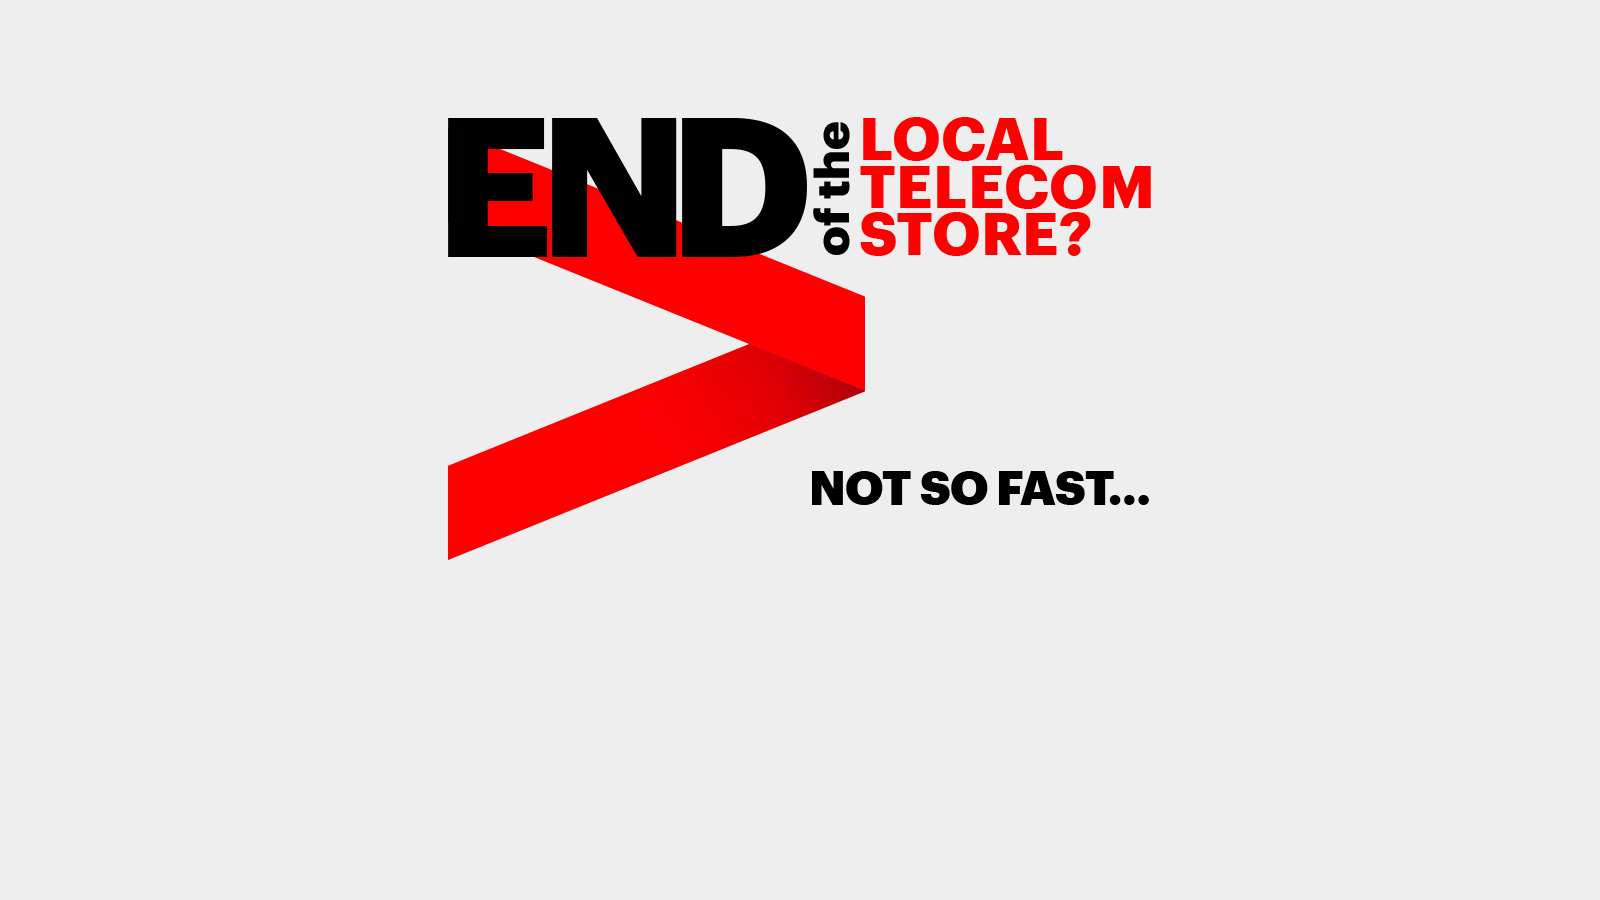 End of the Local Telecom Retail Store? Not so fast  | Accenture